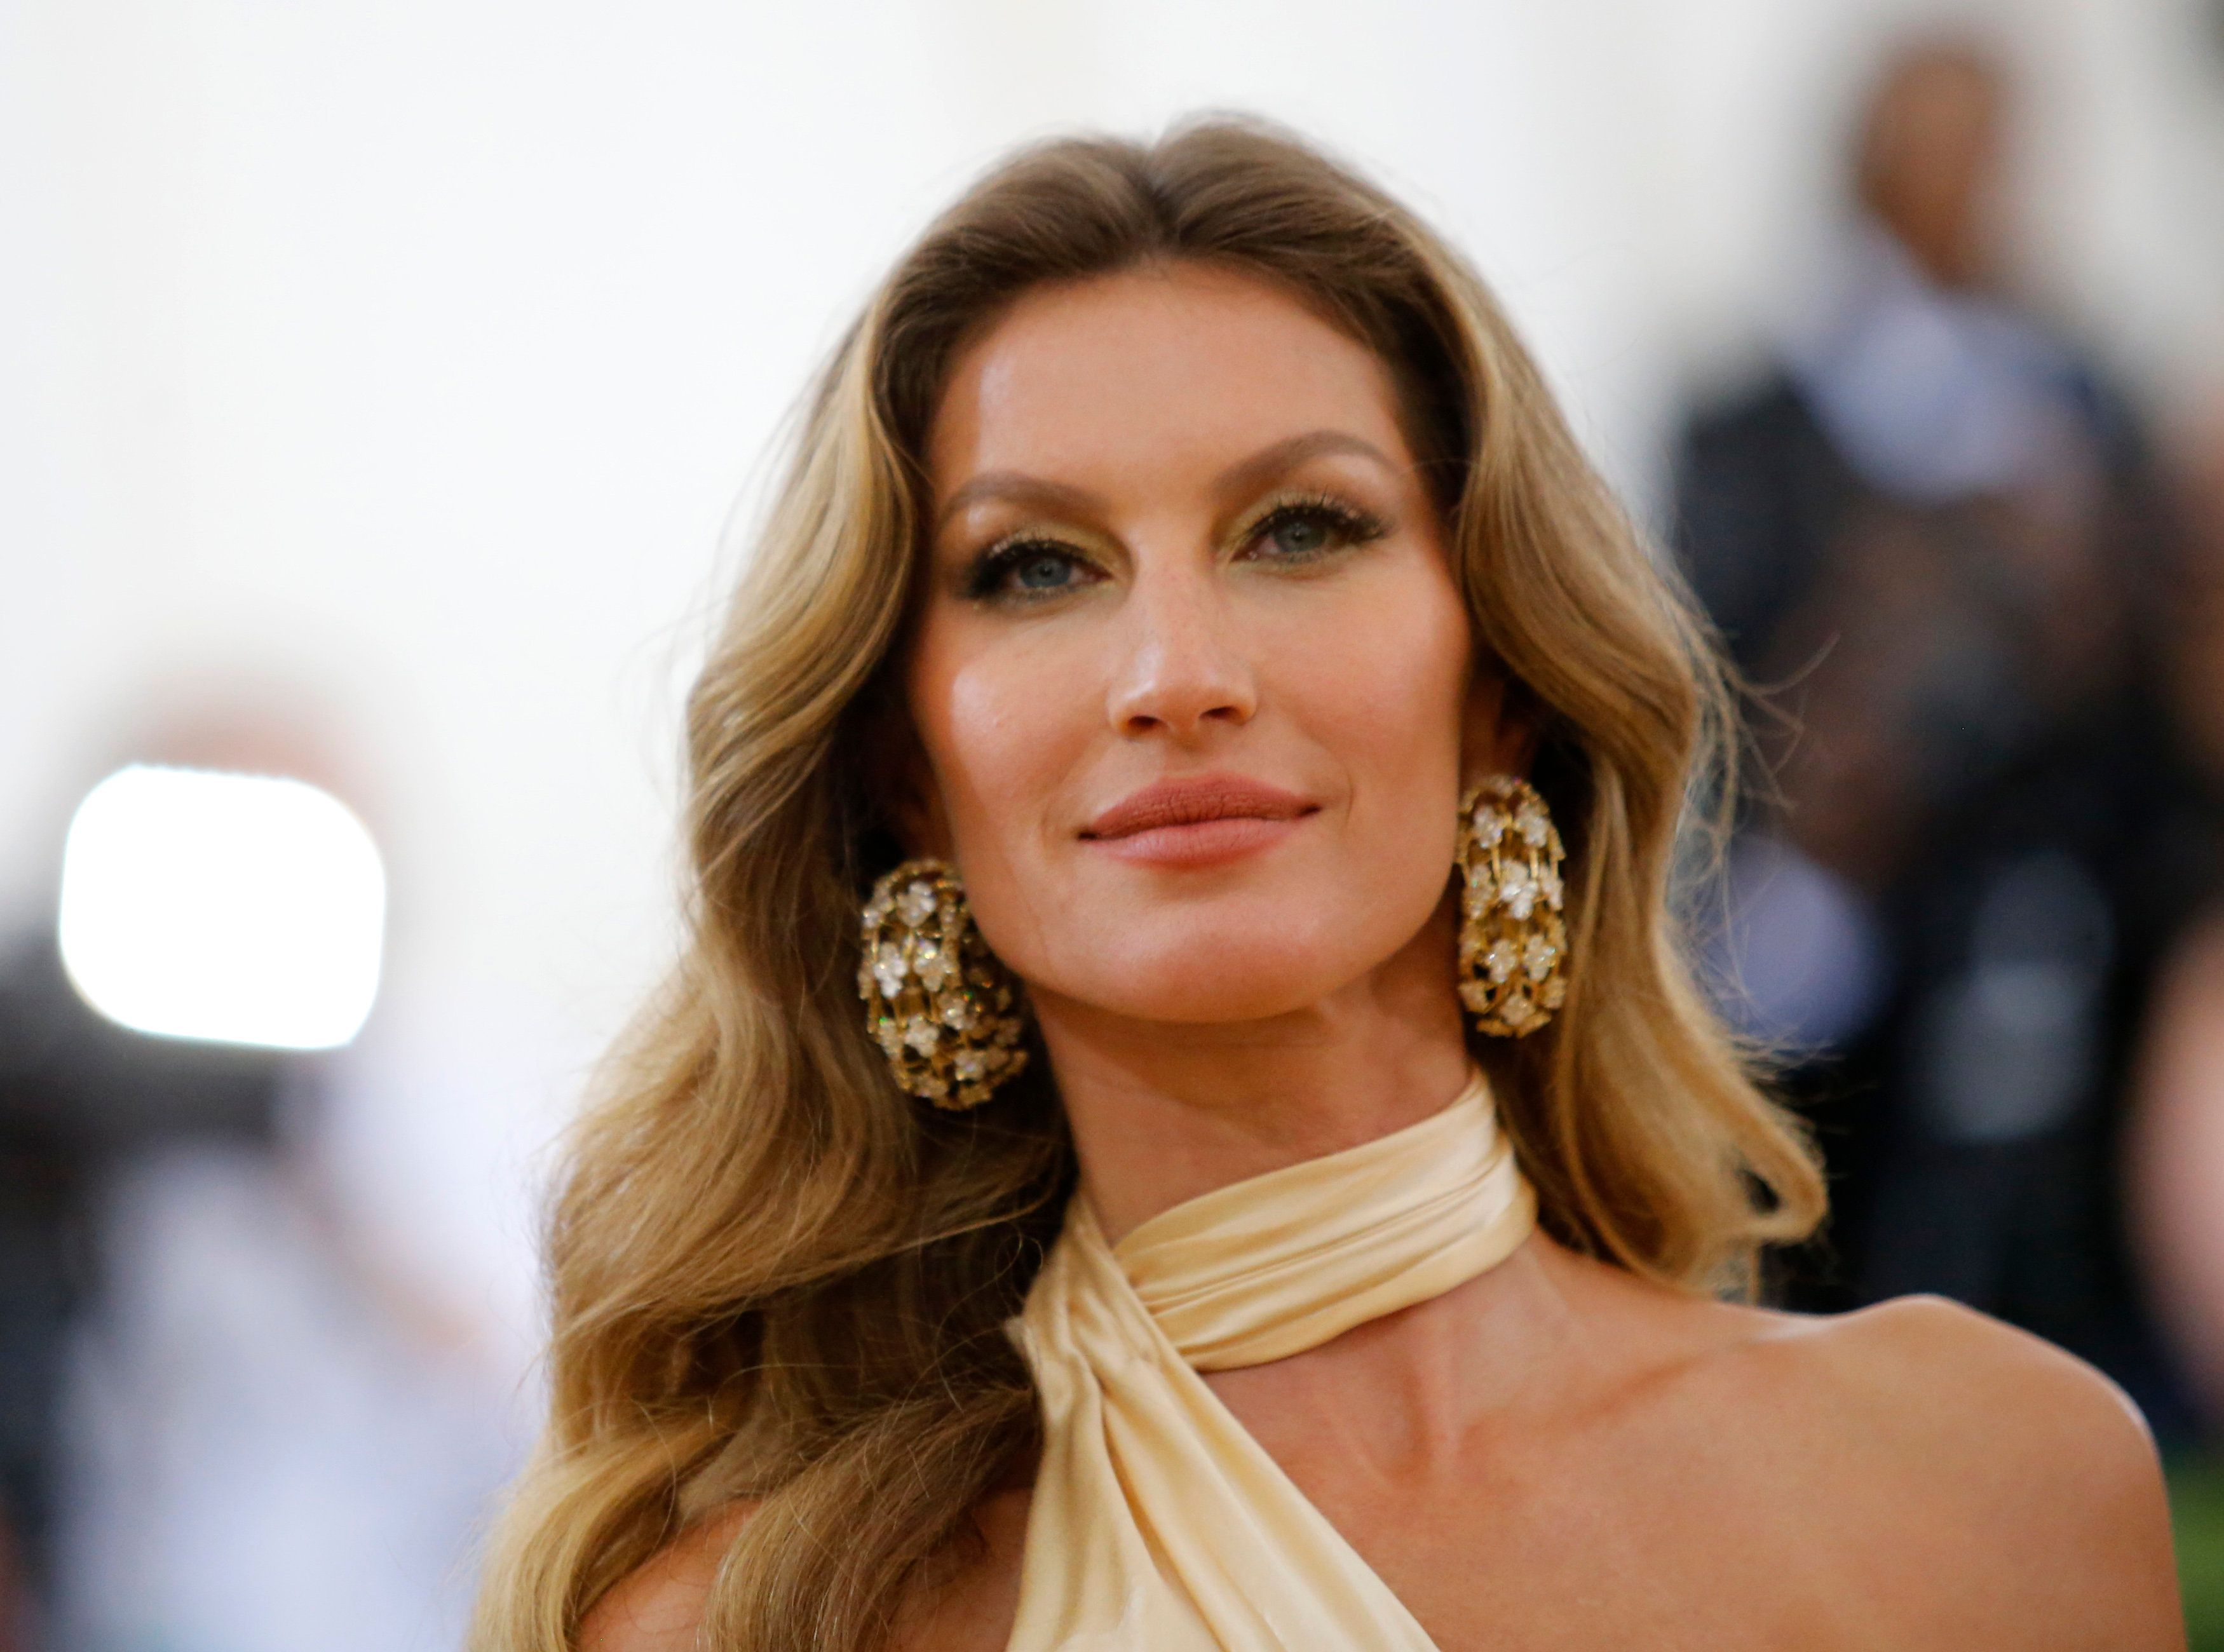 Gisele Bündchen told People magazine that she has struggled with panic attacks and even contemplated